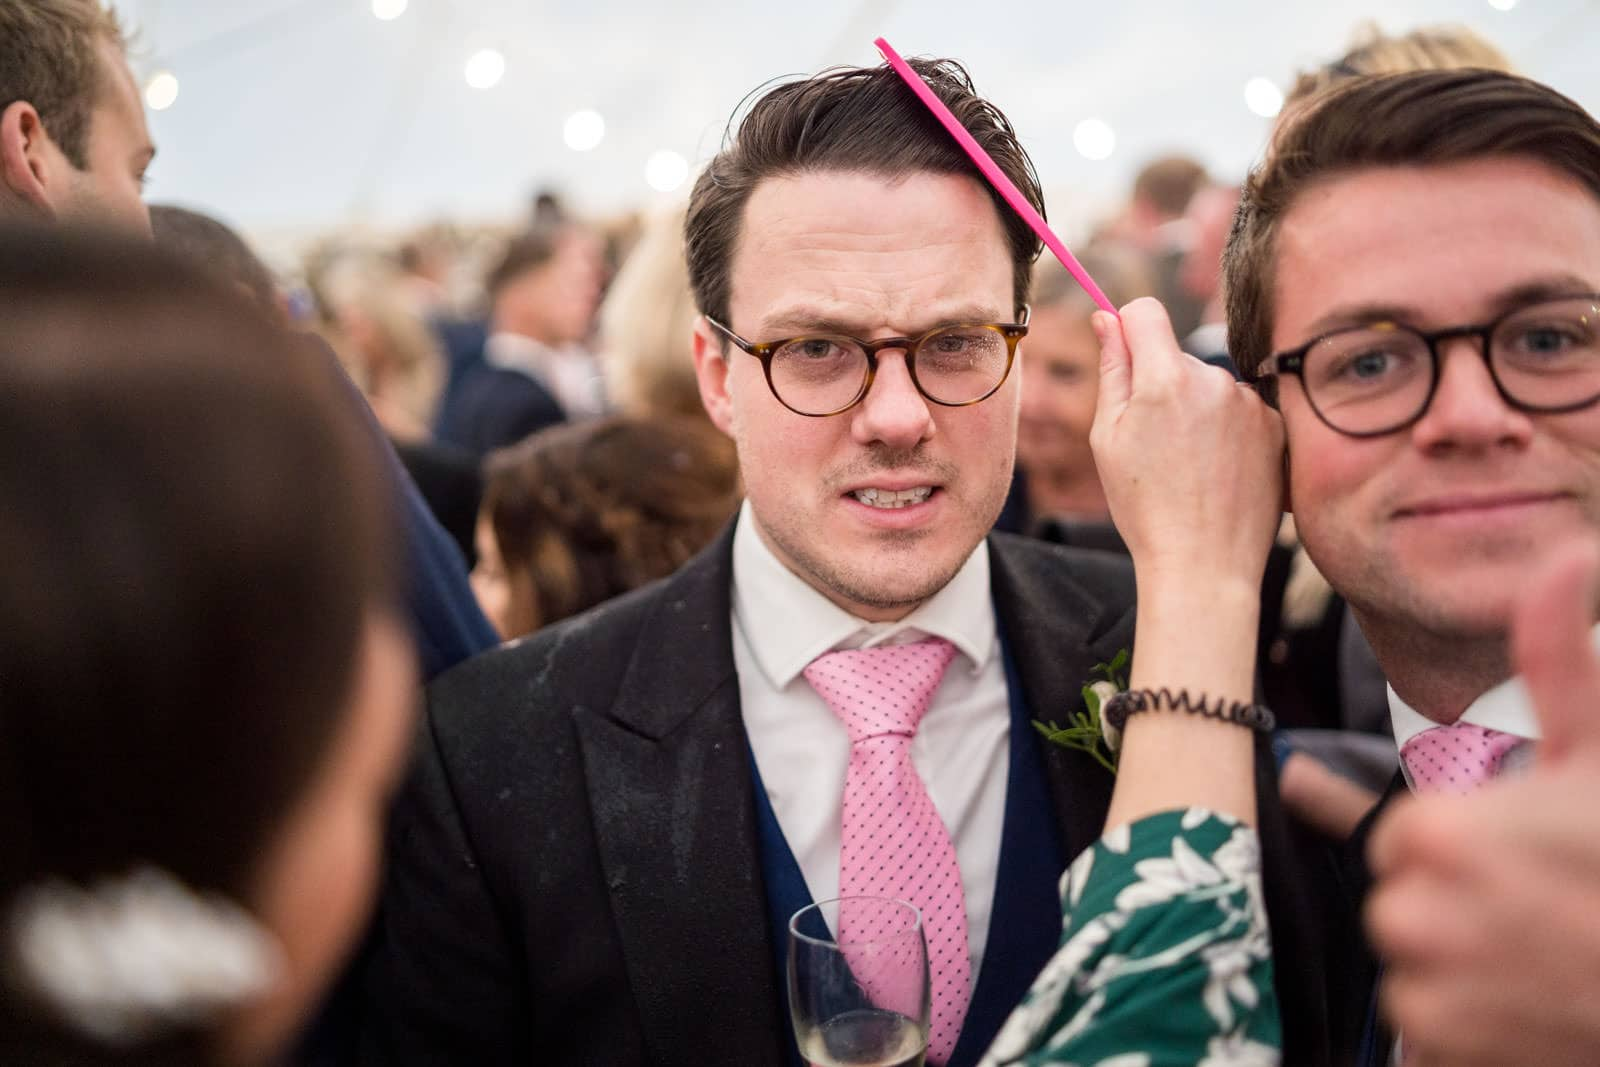 Awkward photo of a wedding guest having their hair combed by girlfriend